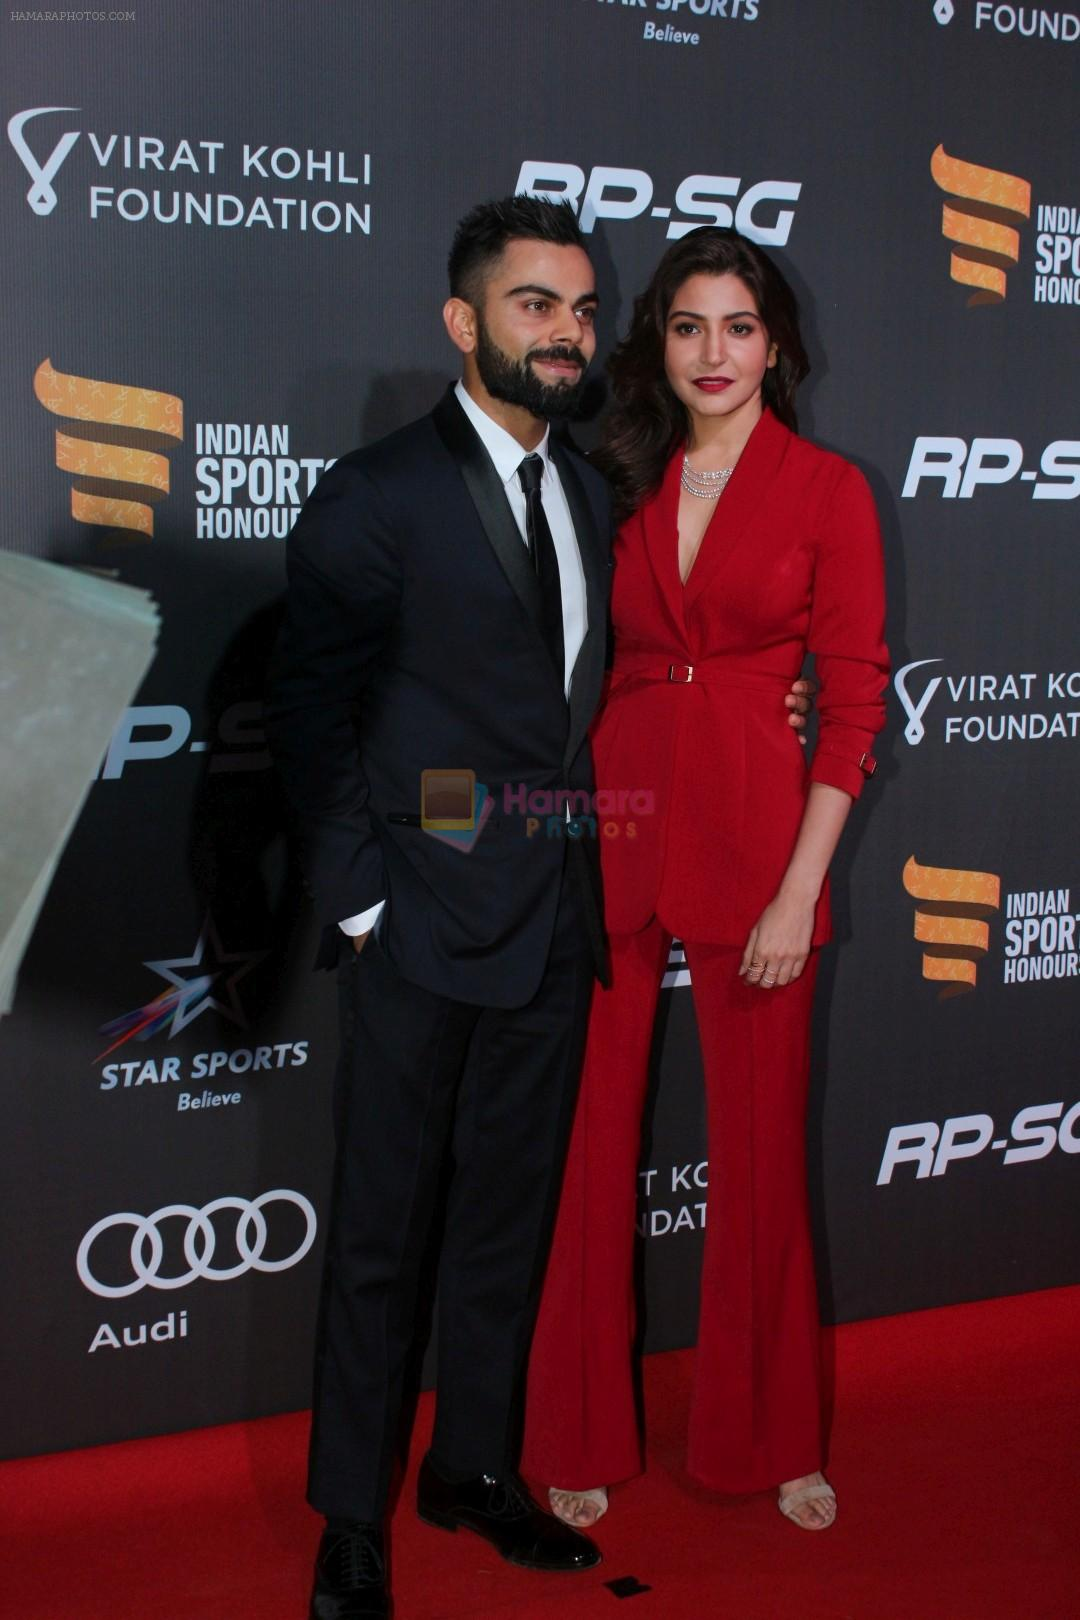 Anushka Sharma, Virat Kohli at Indian Sports Honour Award 2017 on 11th Nov 2017